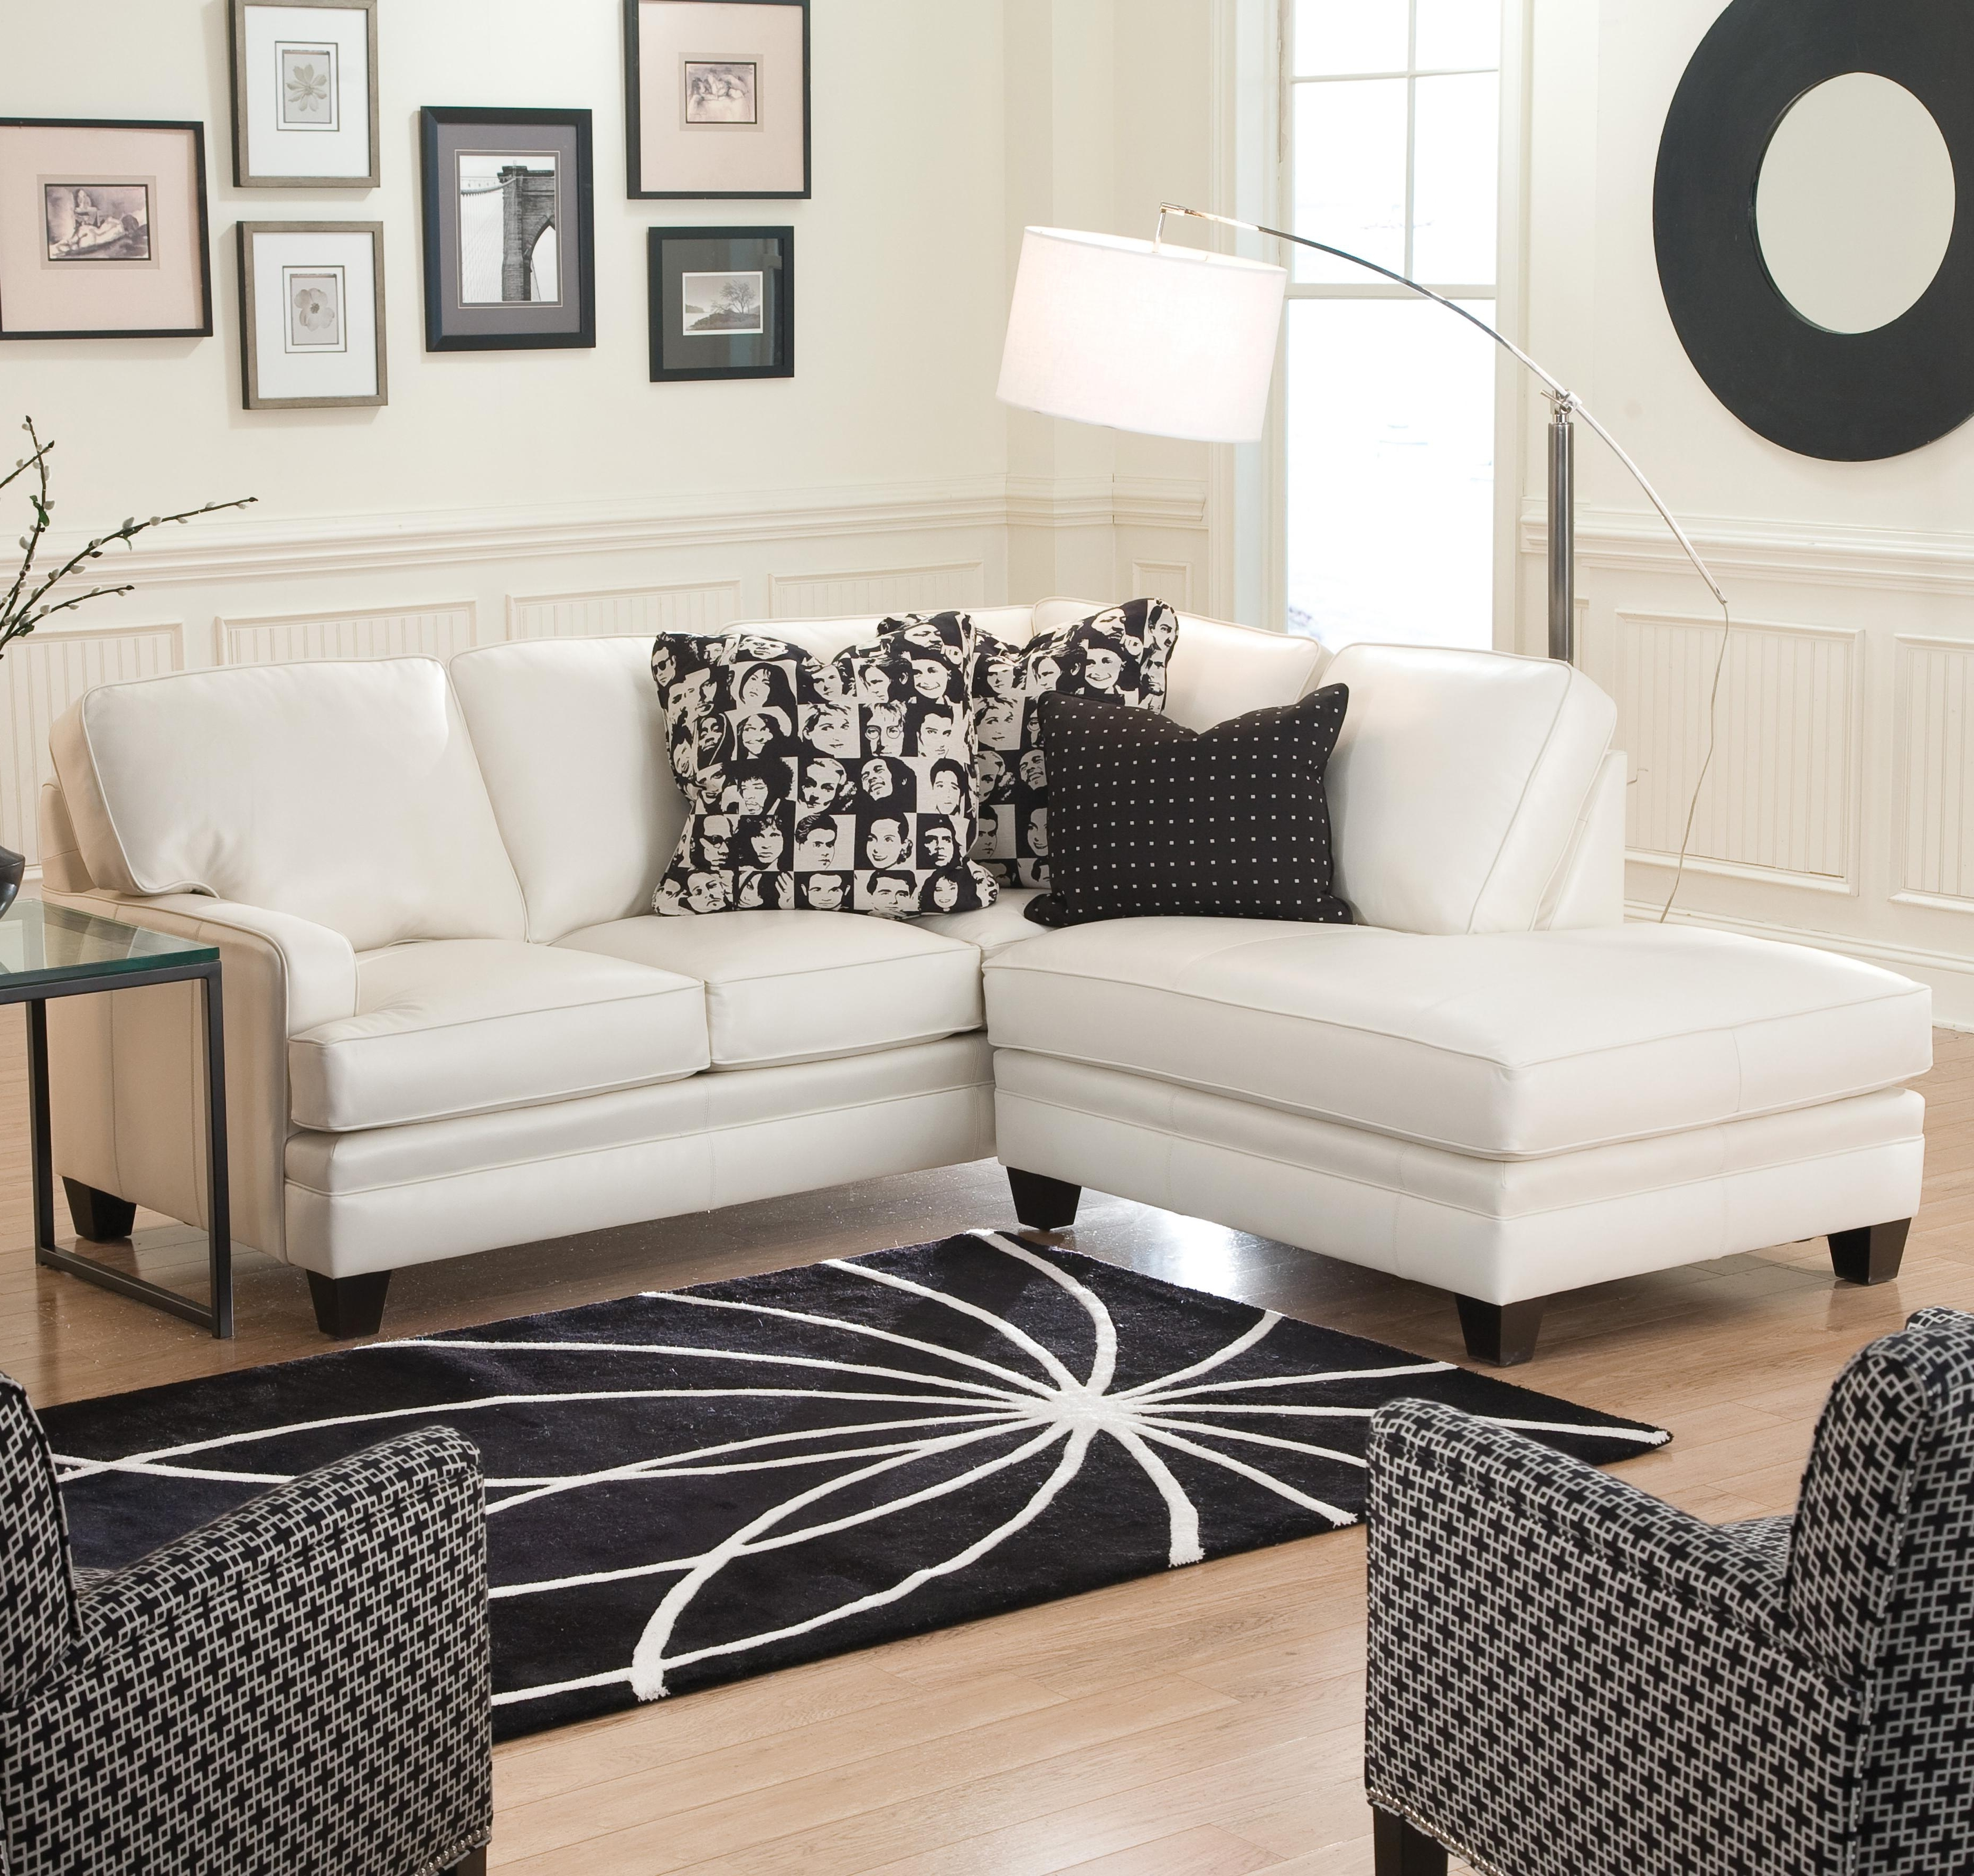 Small Sectional Sofas Intended For Popular Small Sectional Sofa With Contemporary Looksmith Brothers (View 12 of 20)